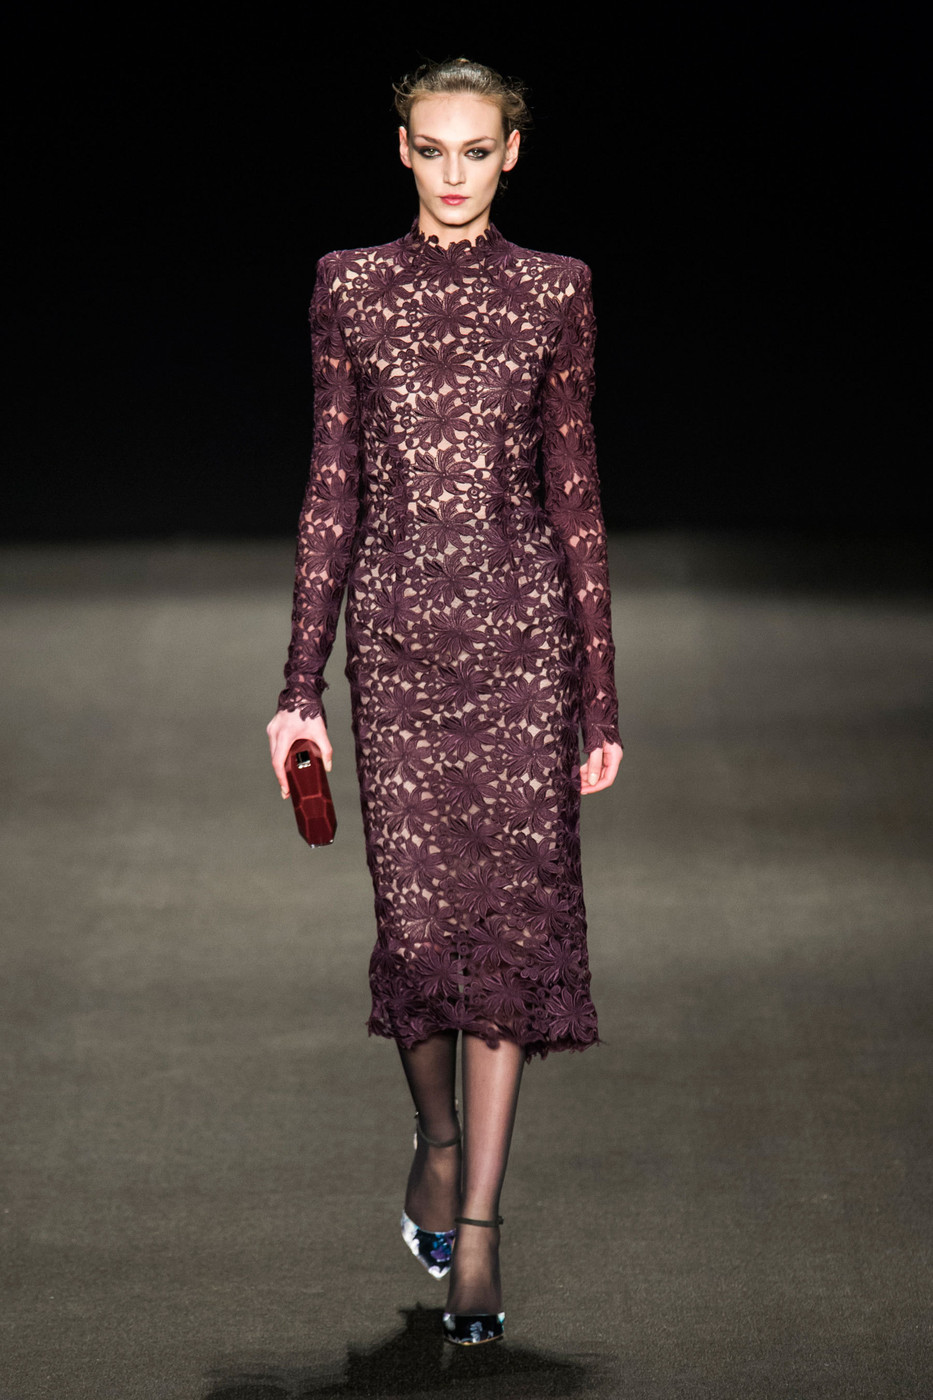 Monique Lhuillier At New York Fashion Week Fall 2015 Livingly